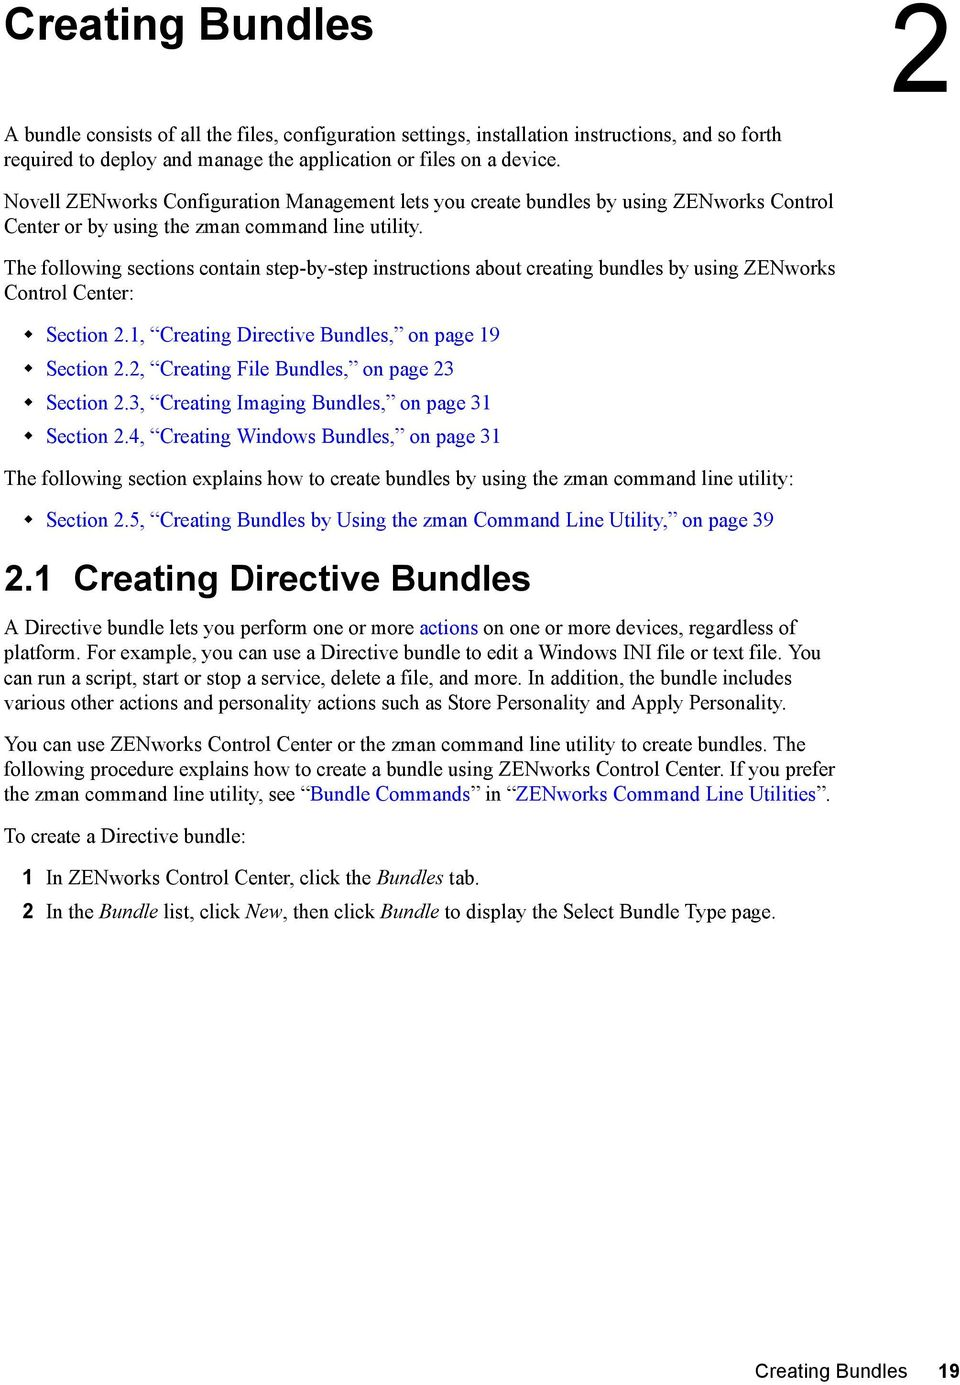 The following sections contain step-by-step instructions about creating bundles by using ZENworks Control Center: Section 2.1, Creating Directive Bundles, on page 19 Section 2.